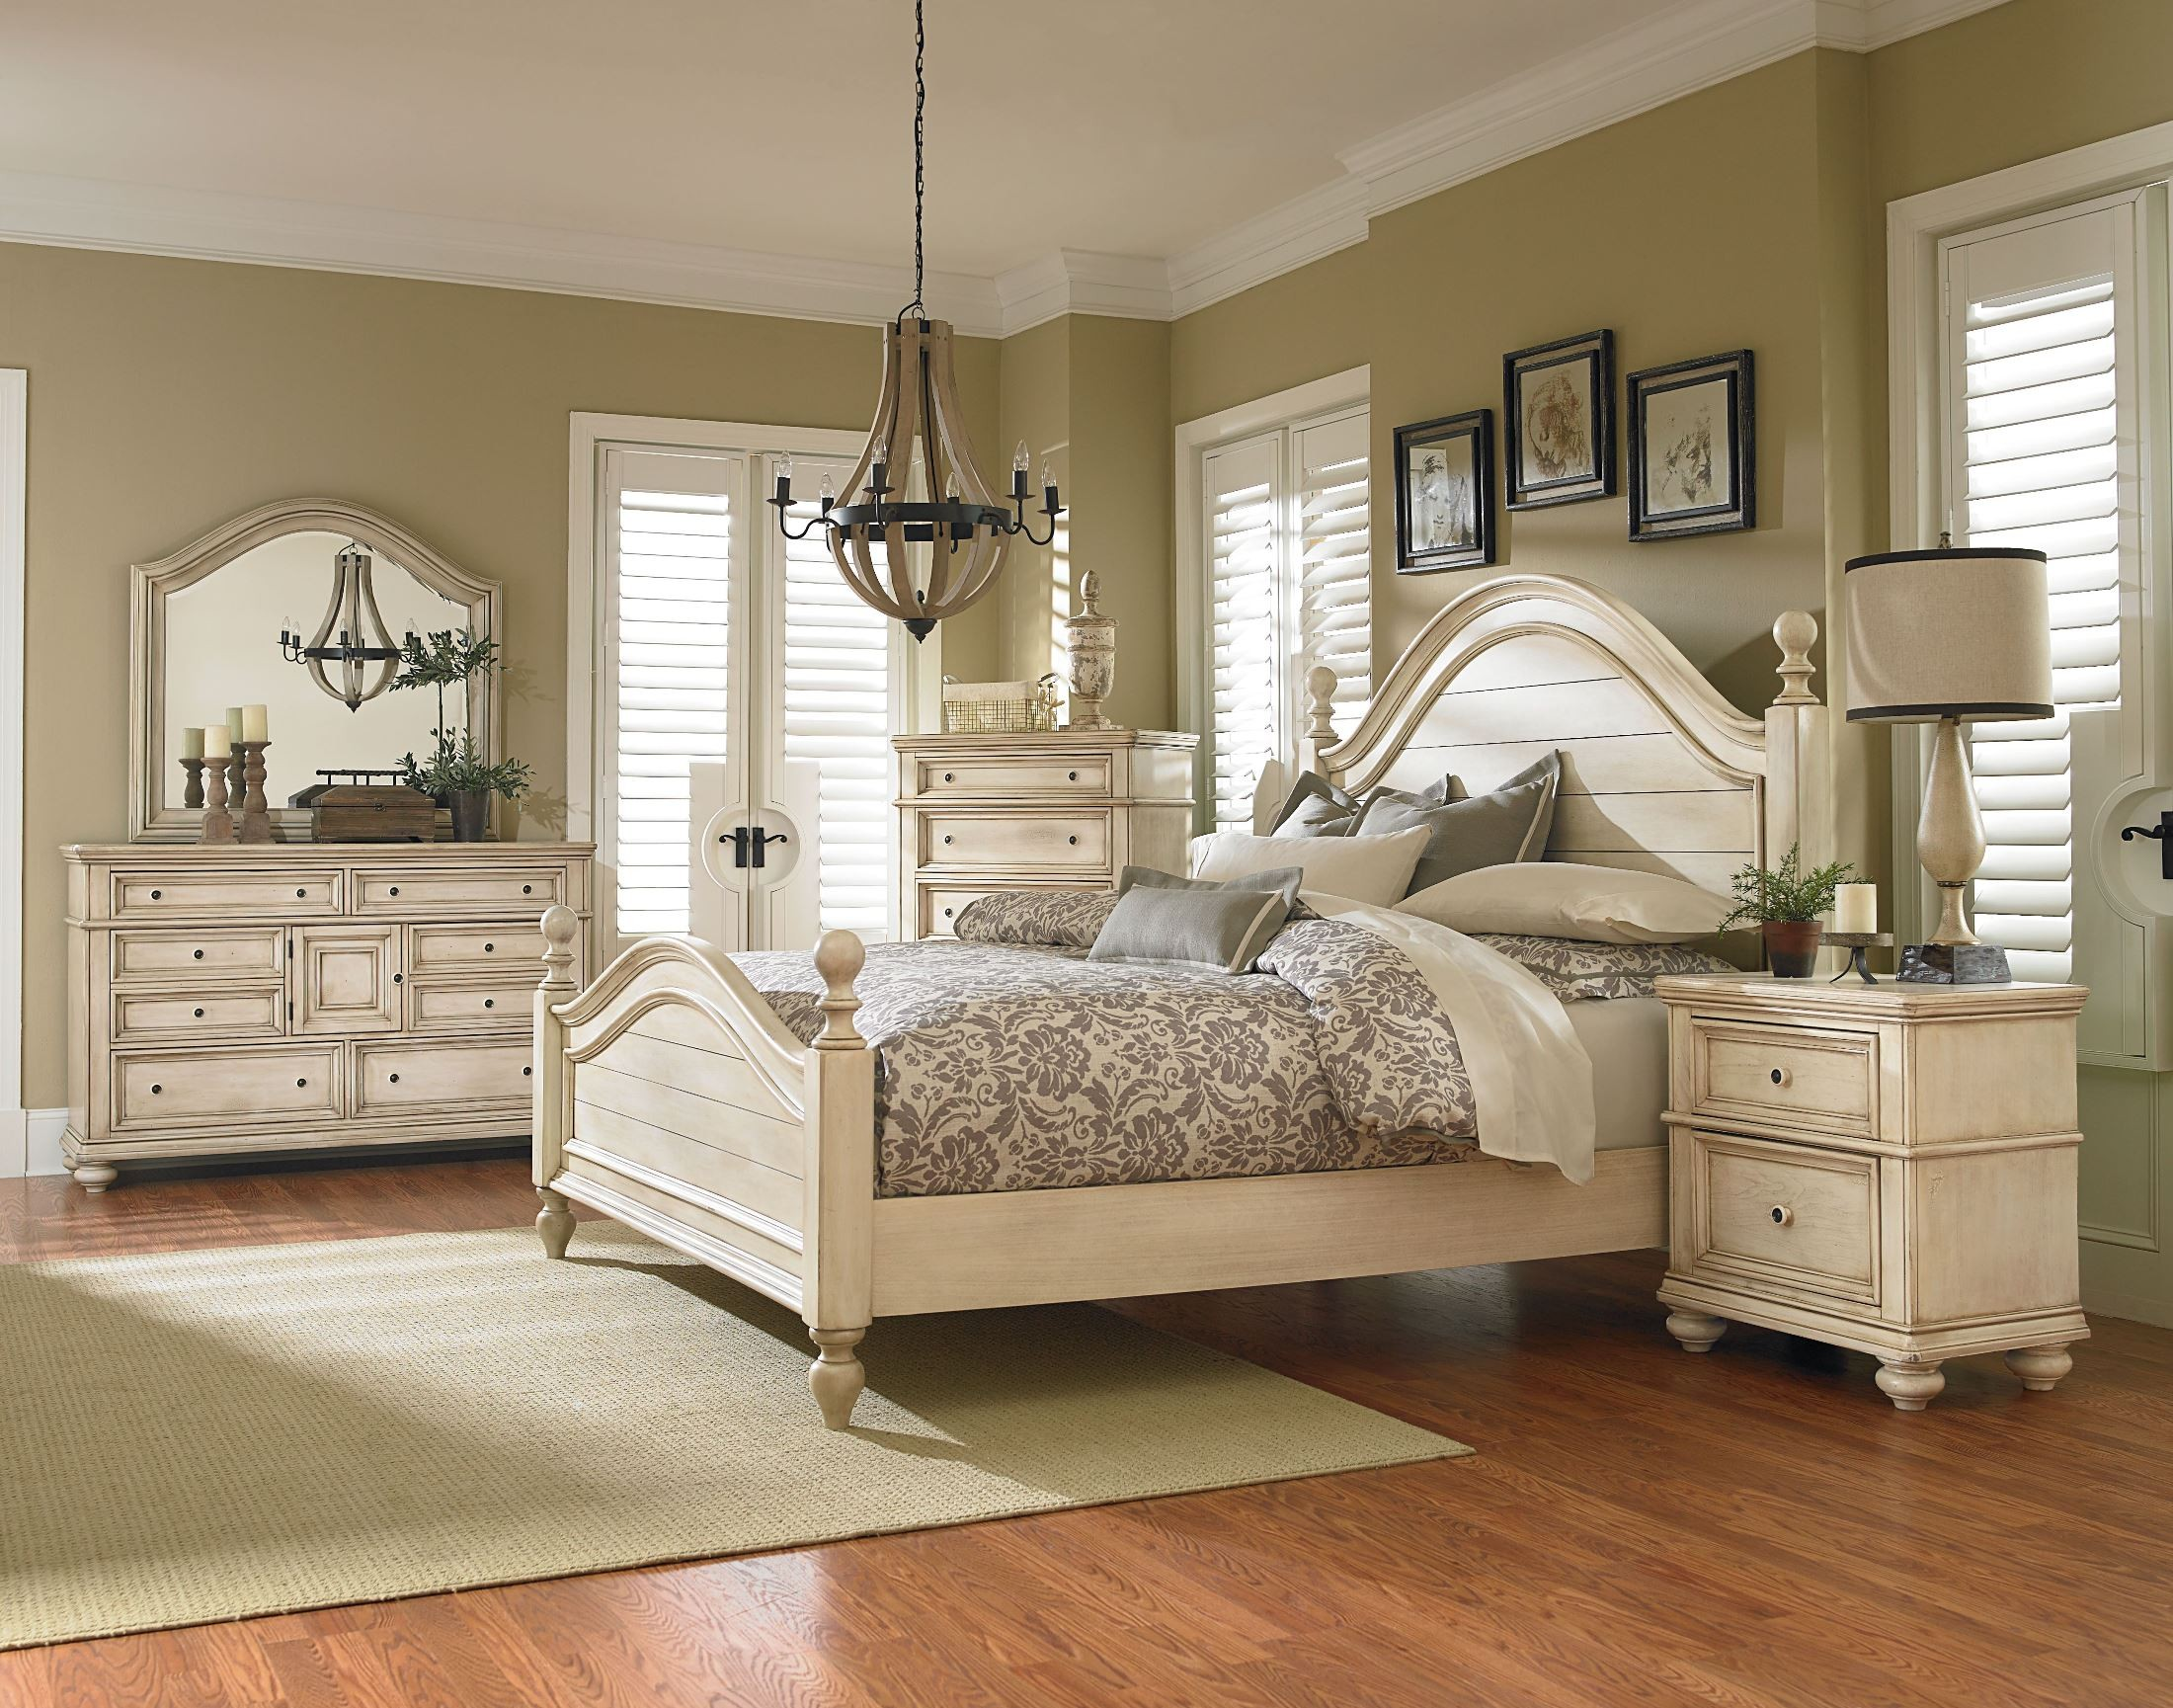 Chateau antique french bisque poster bedroom set from for Decoration maison white